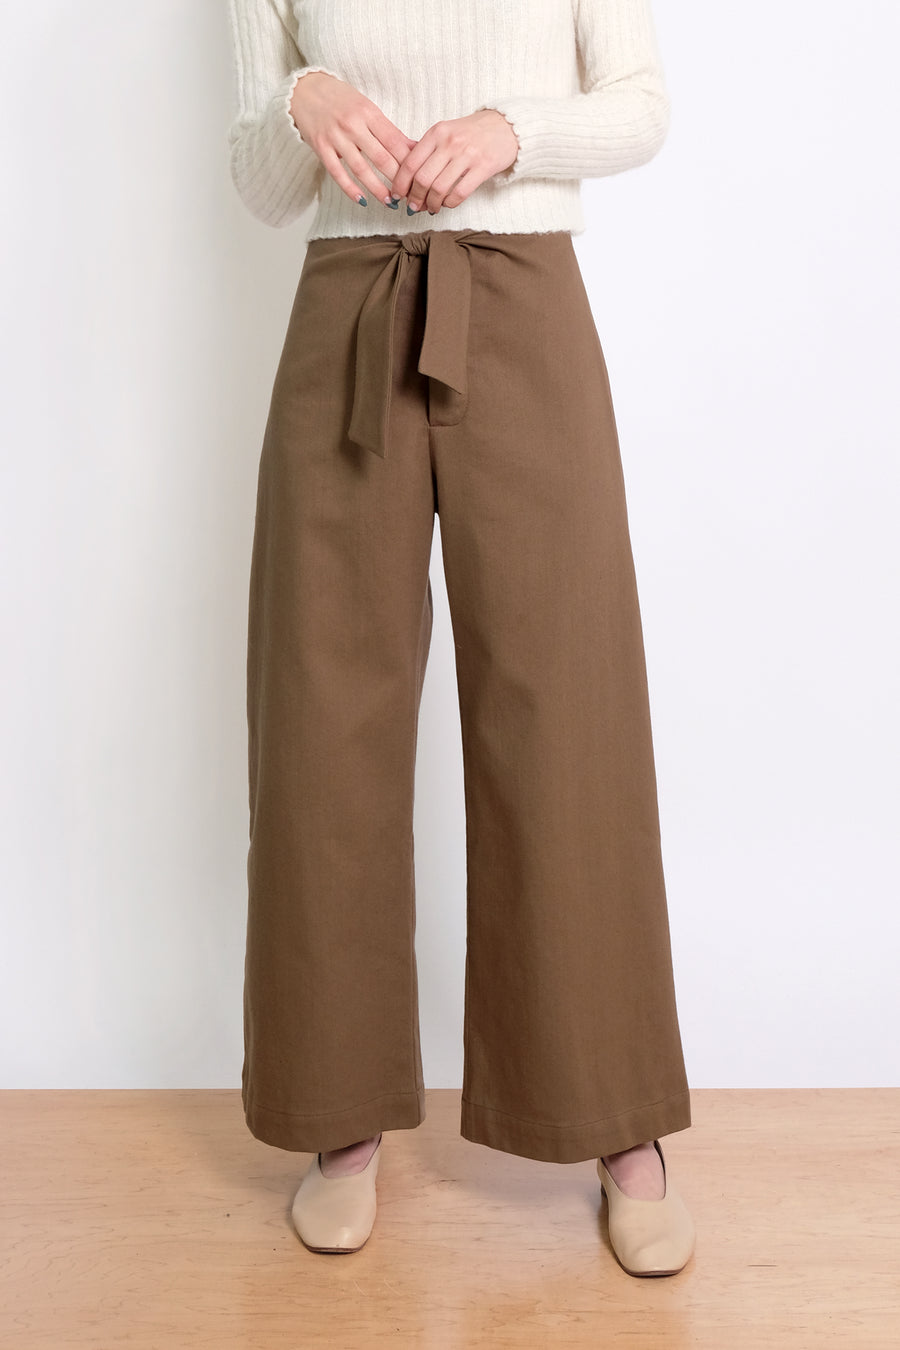 Twig Knotted Sailor Pant